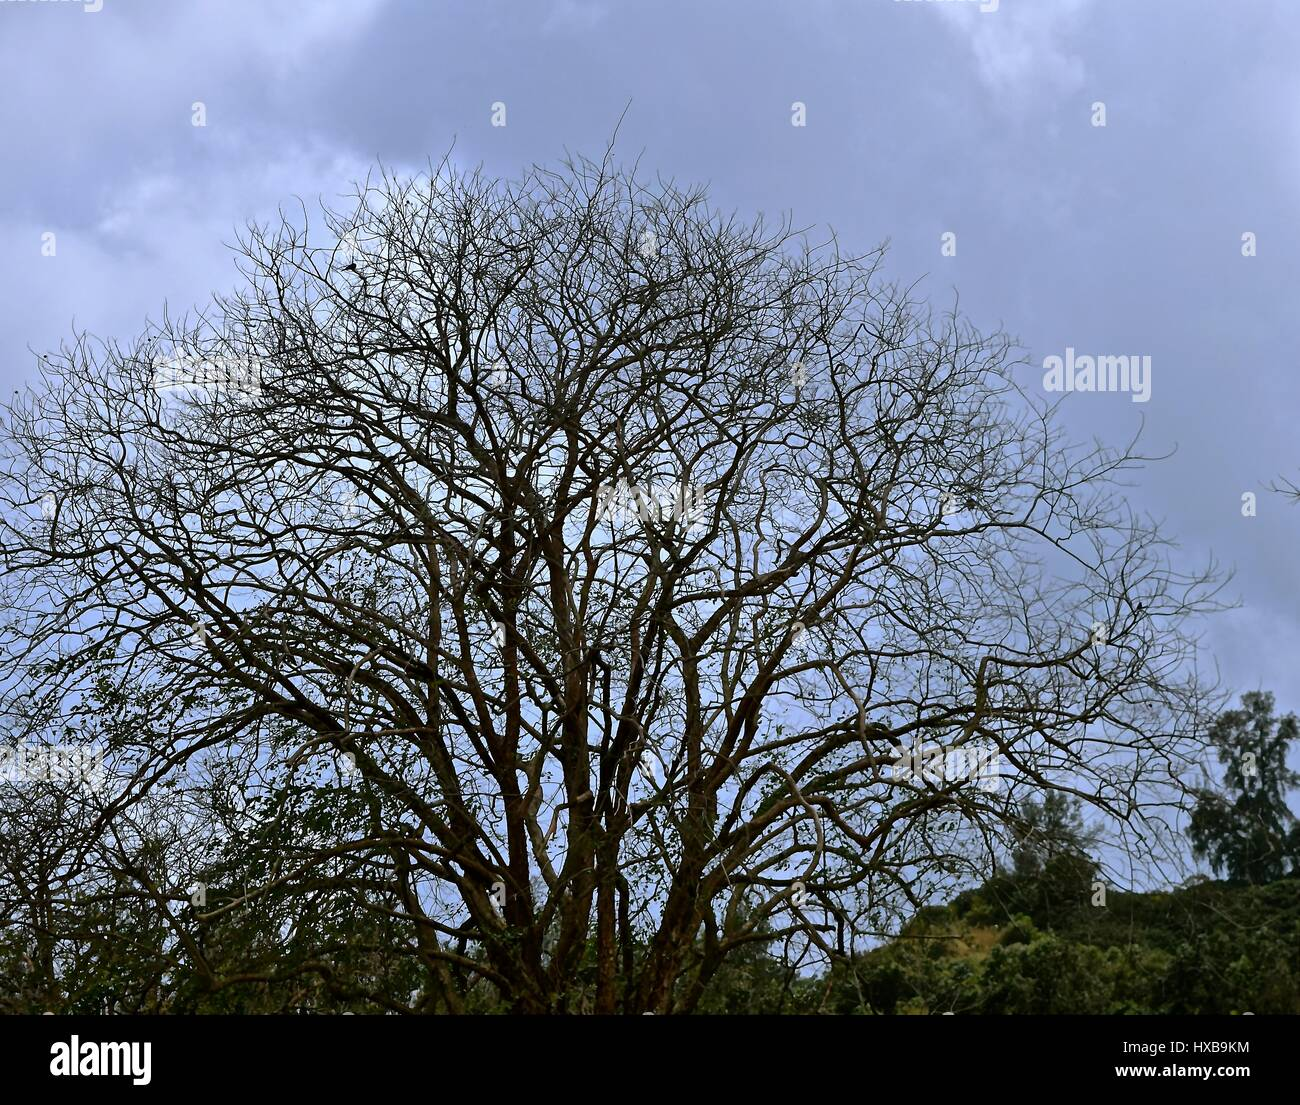 Bare Tree / Leafless tree signifying sorrow or death. - Stock Image